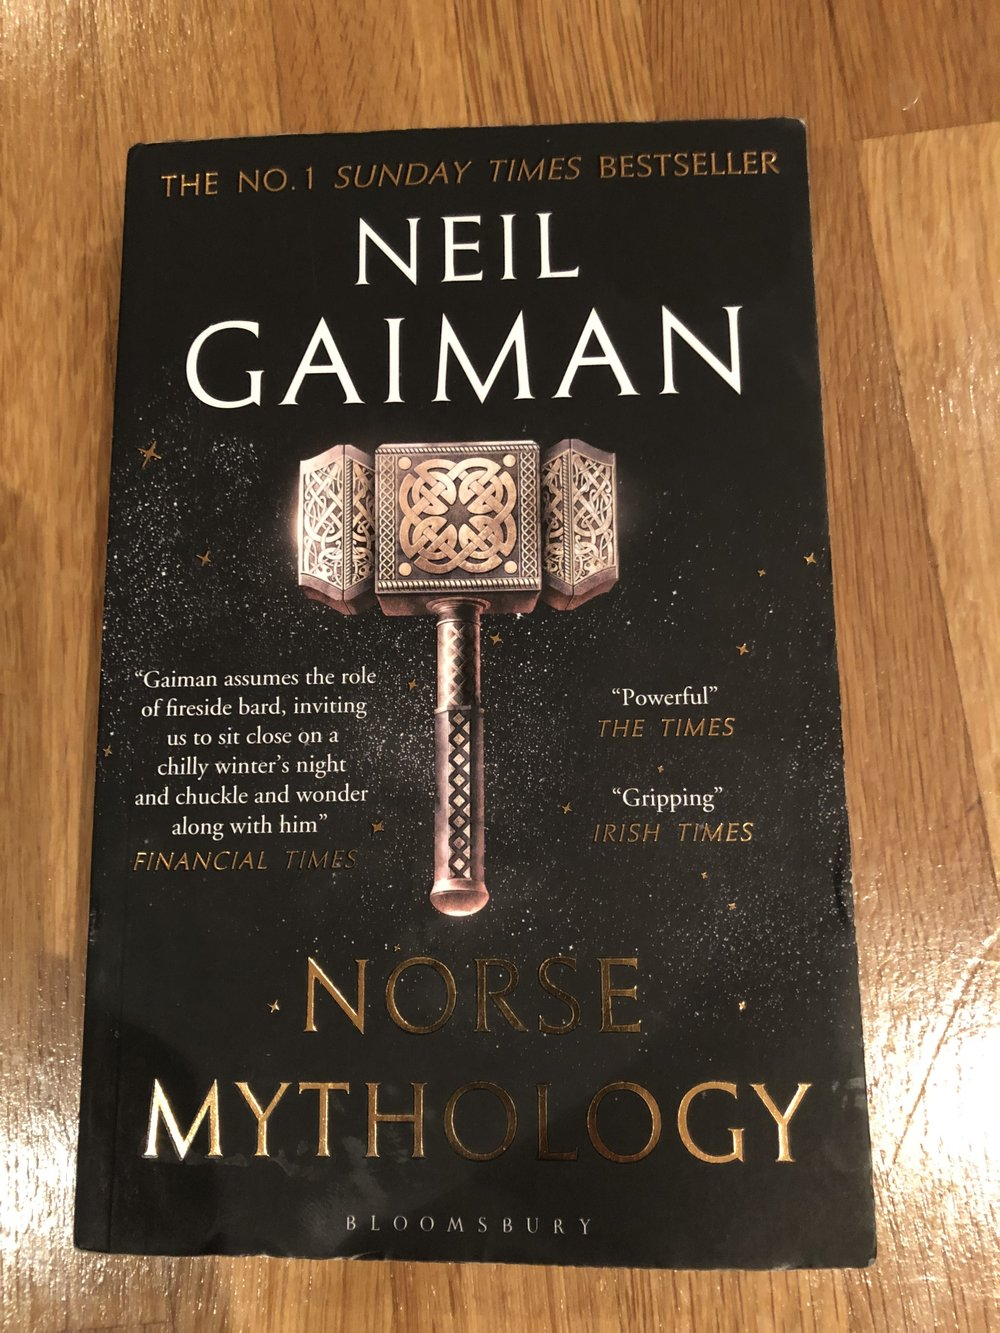 The cover of Neil Gaiman's Norse Mythology